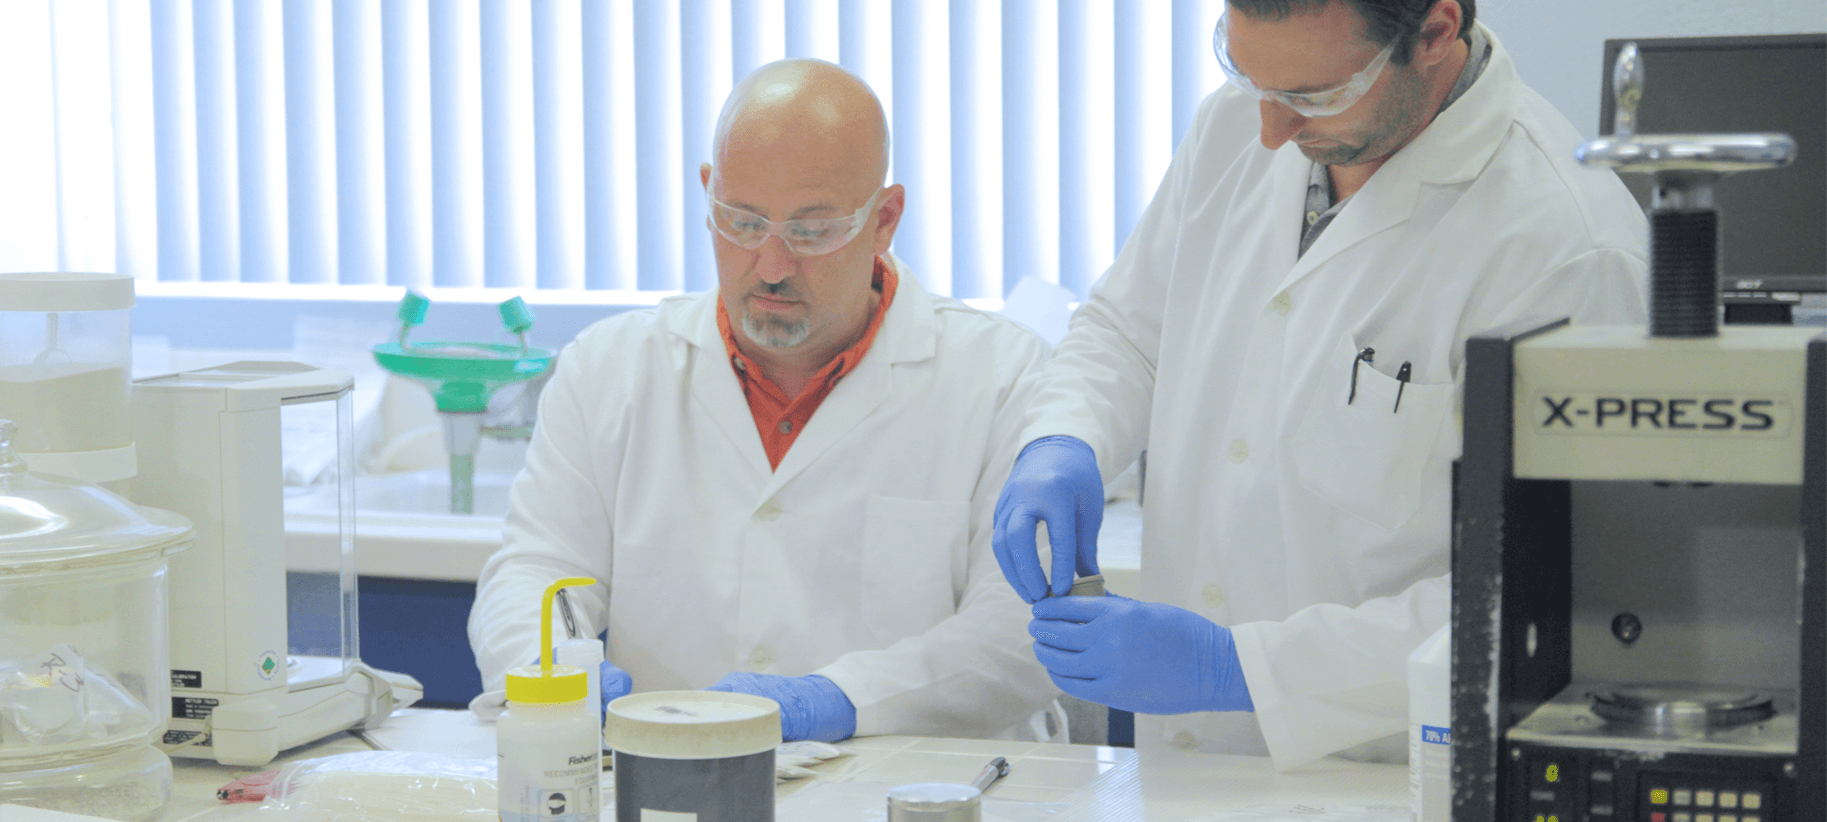 Two lab techs working on analysing samples